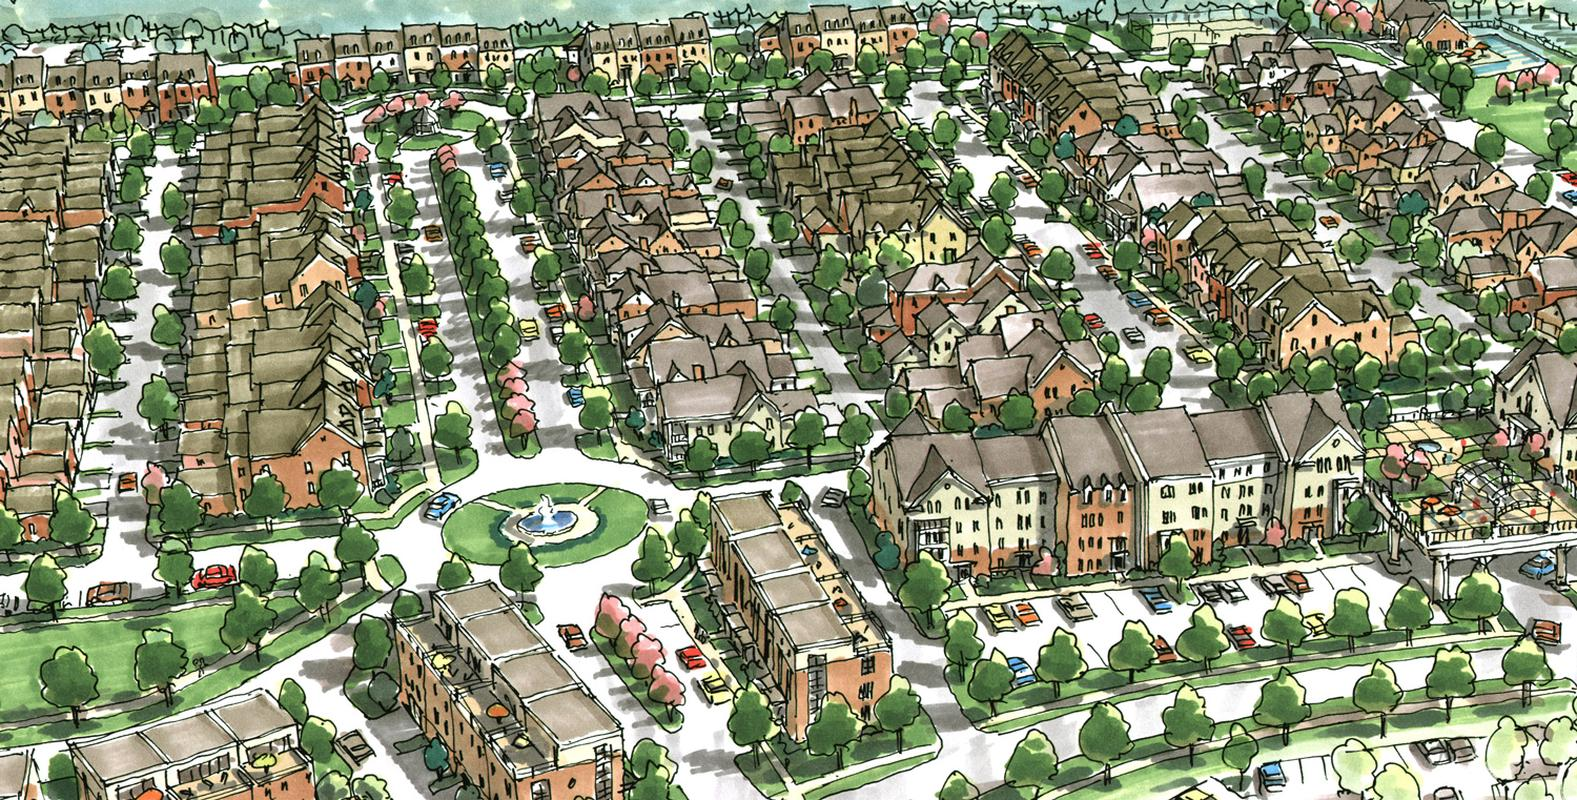 EDGE master planning community sketch of Indian Lake Village